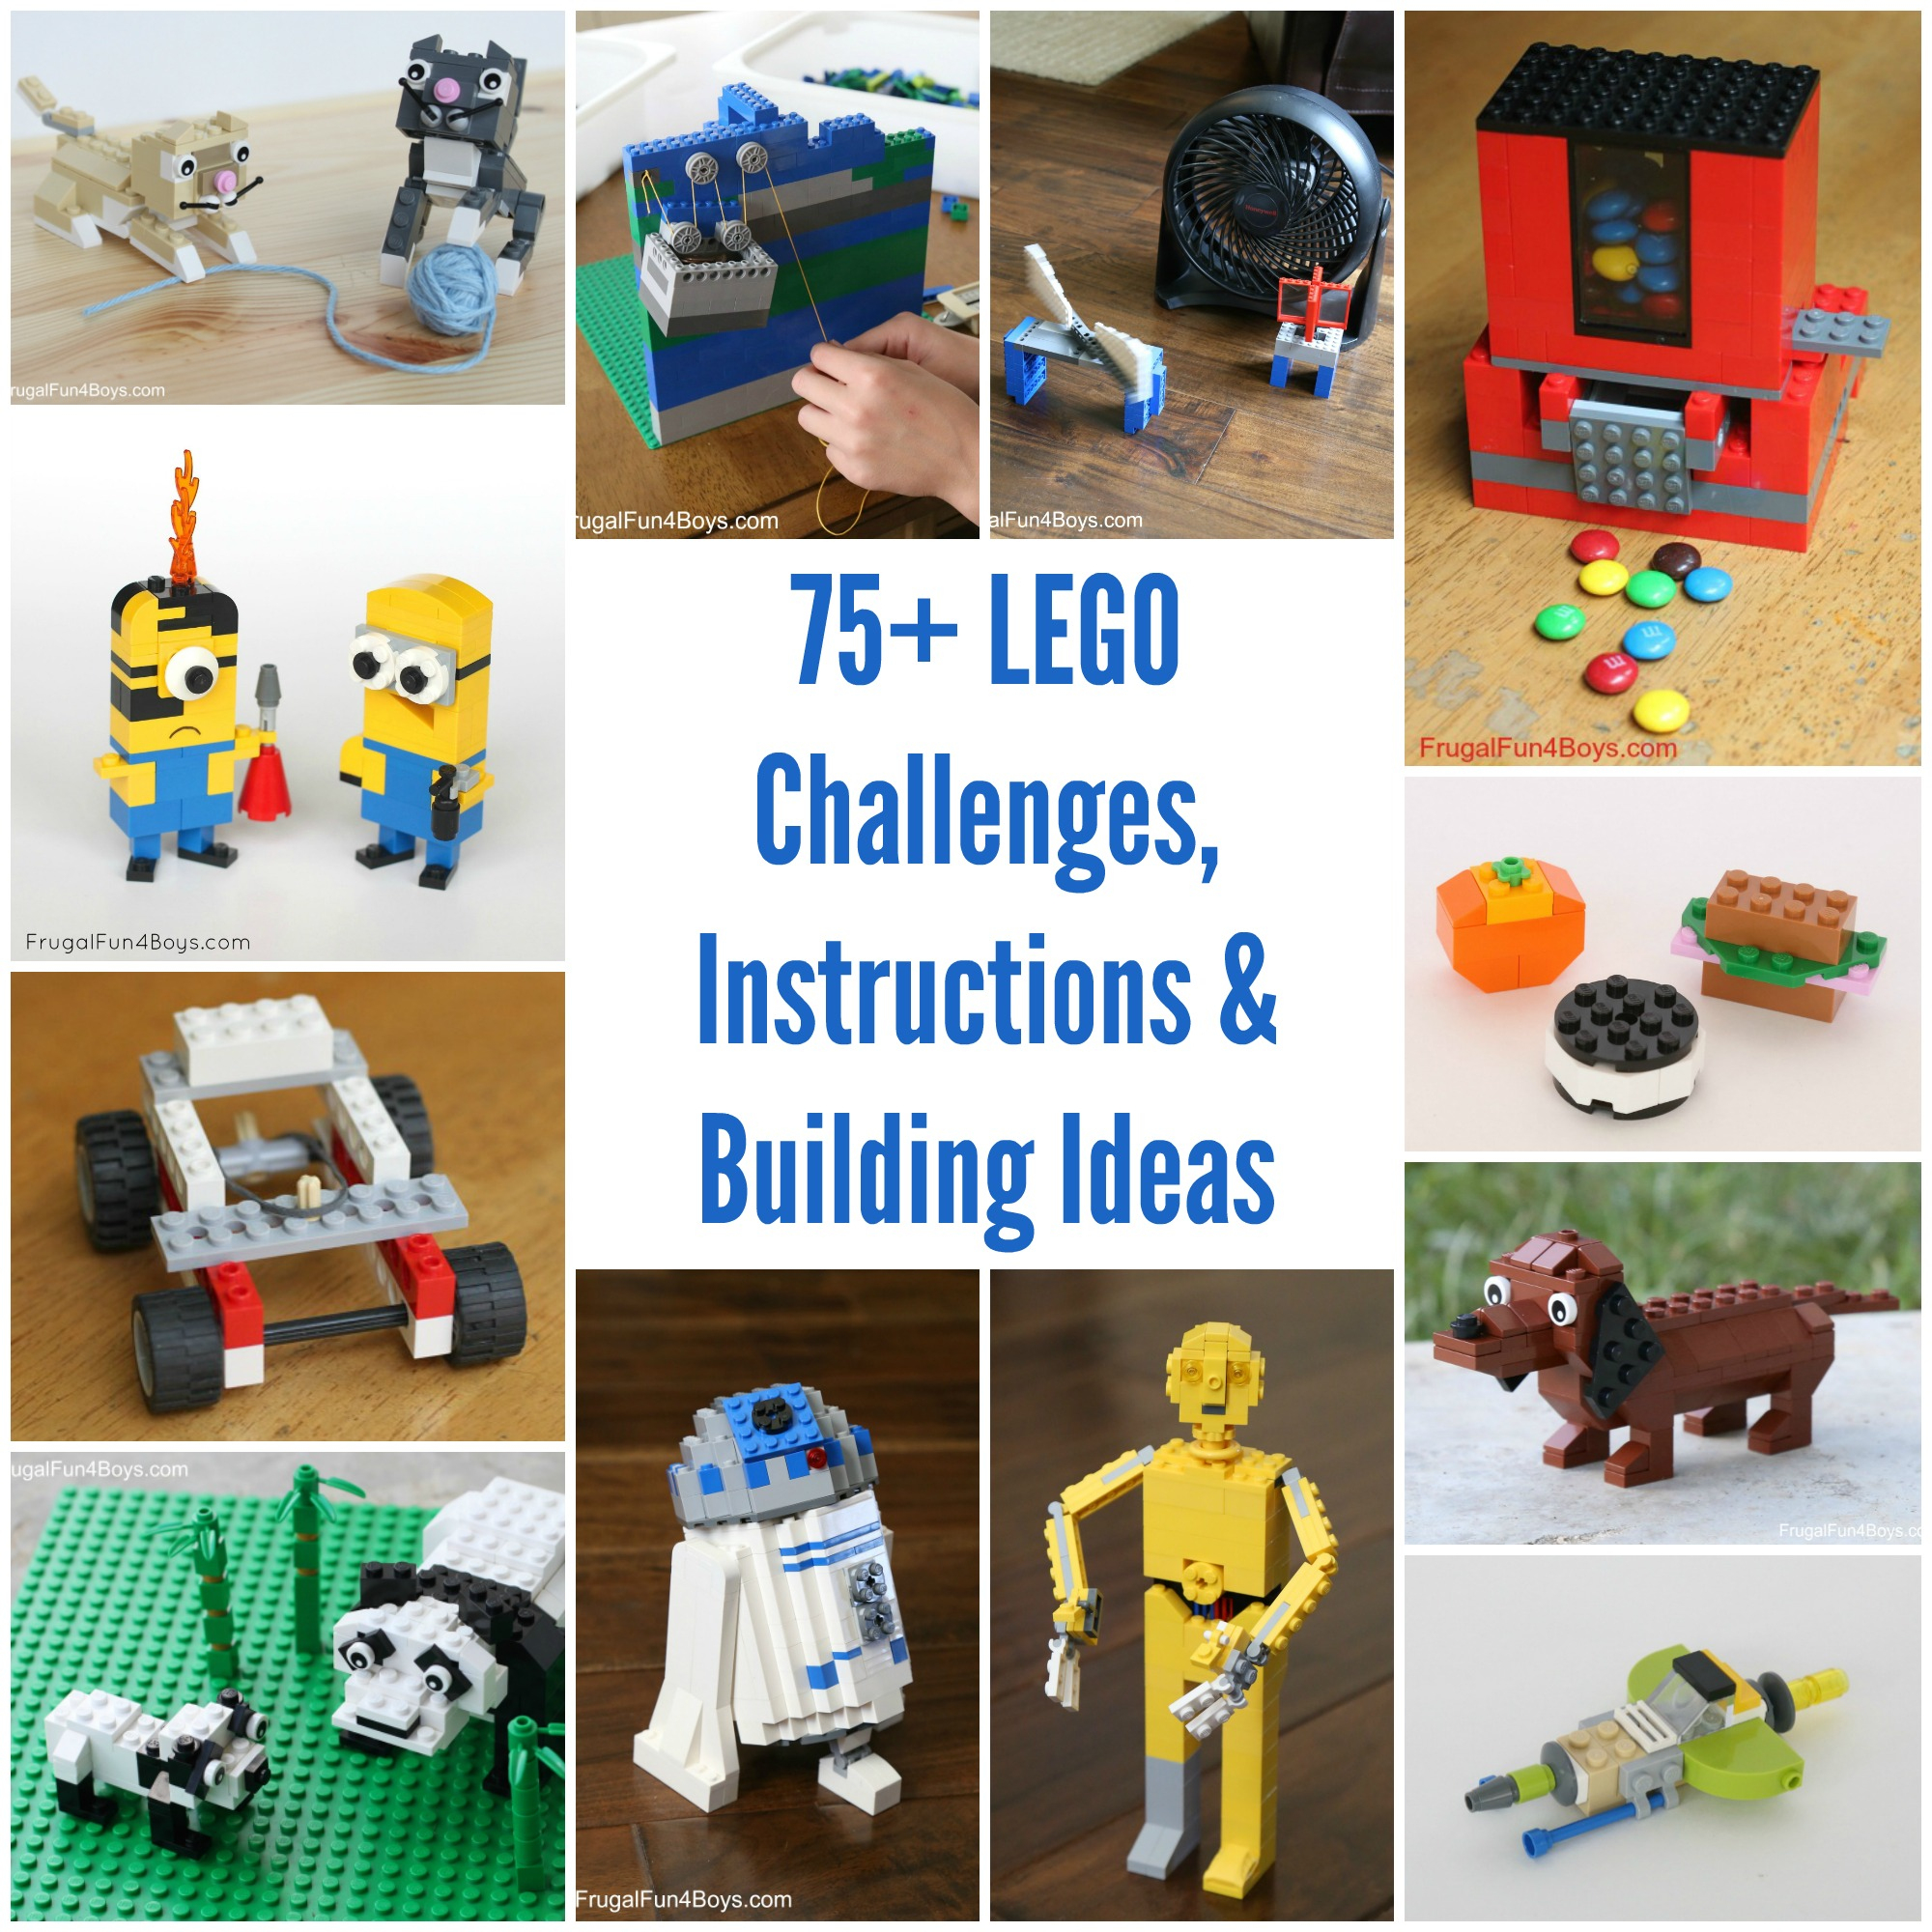 50+ Lego Building Projects For Kids - Frugal Fun For Boys And Girls - Free Printable Lego Instructions